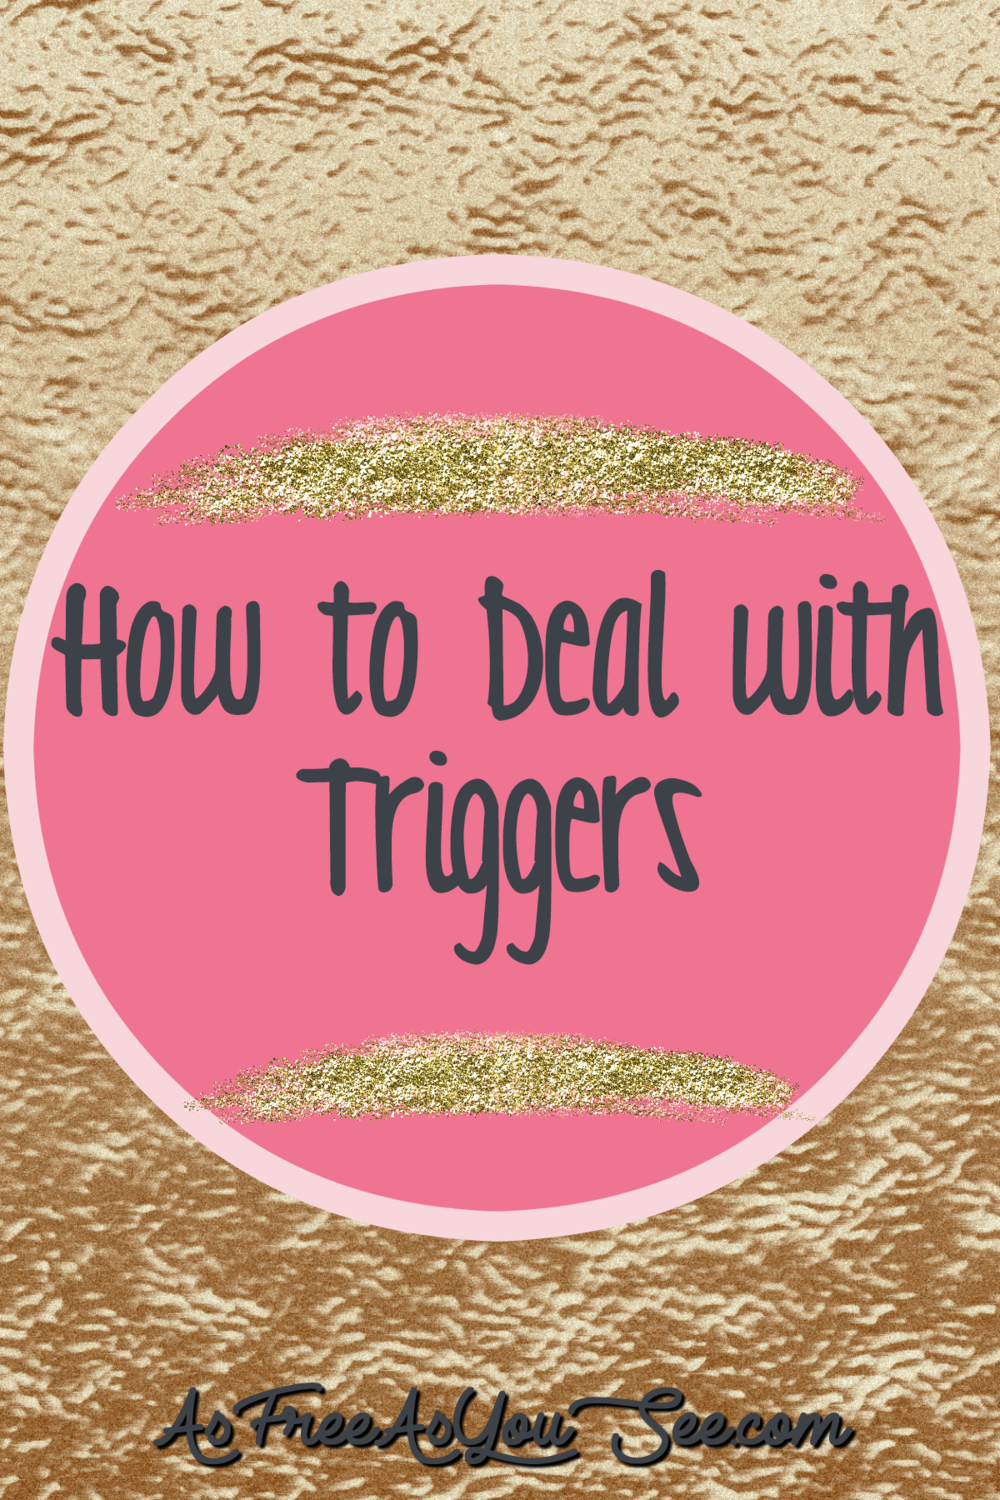 How to Deal with Triggers